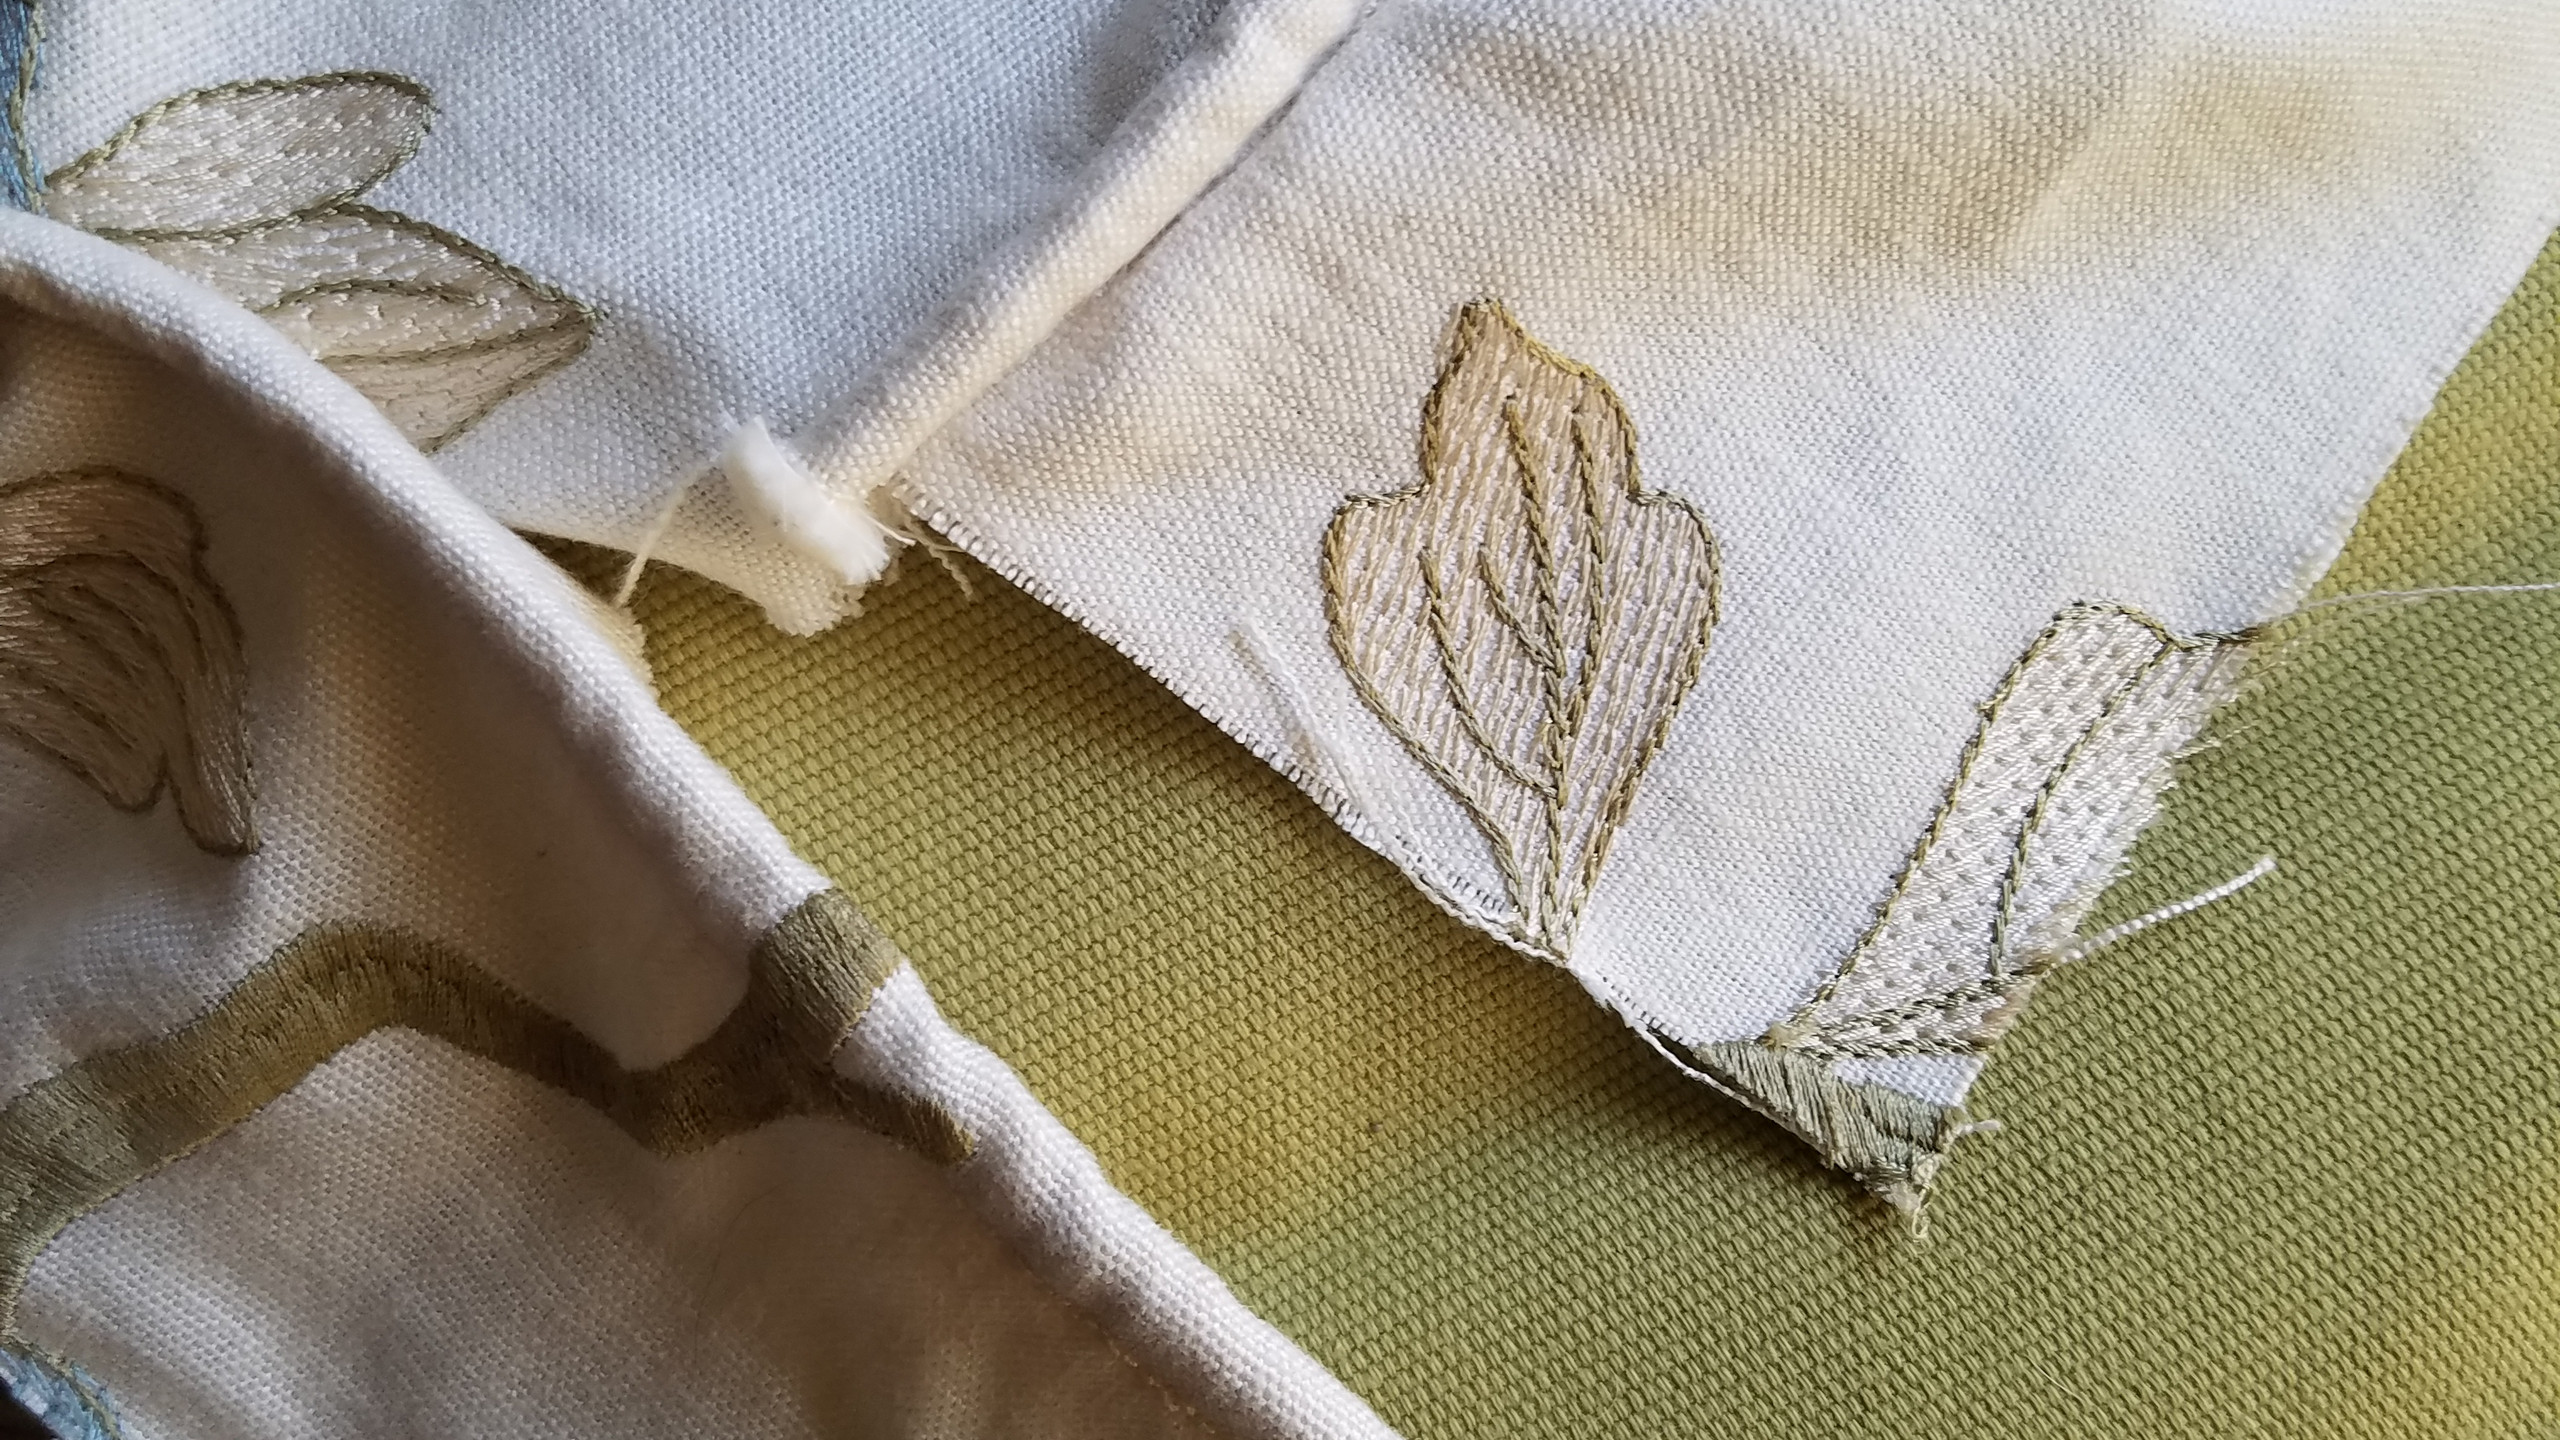 Newly sewn in welting